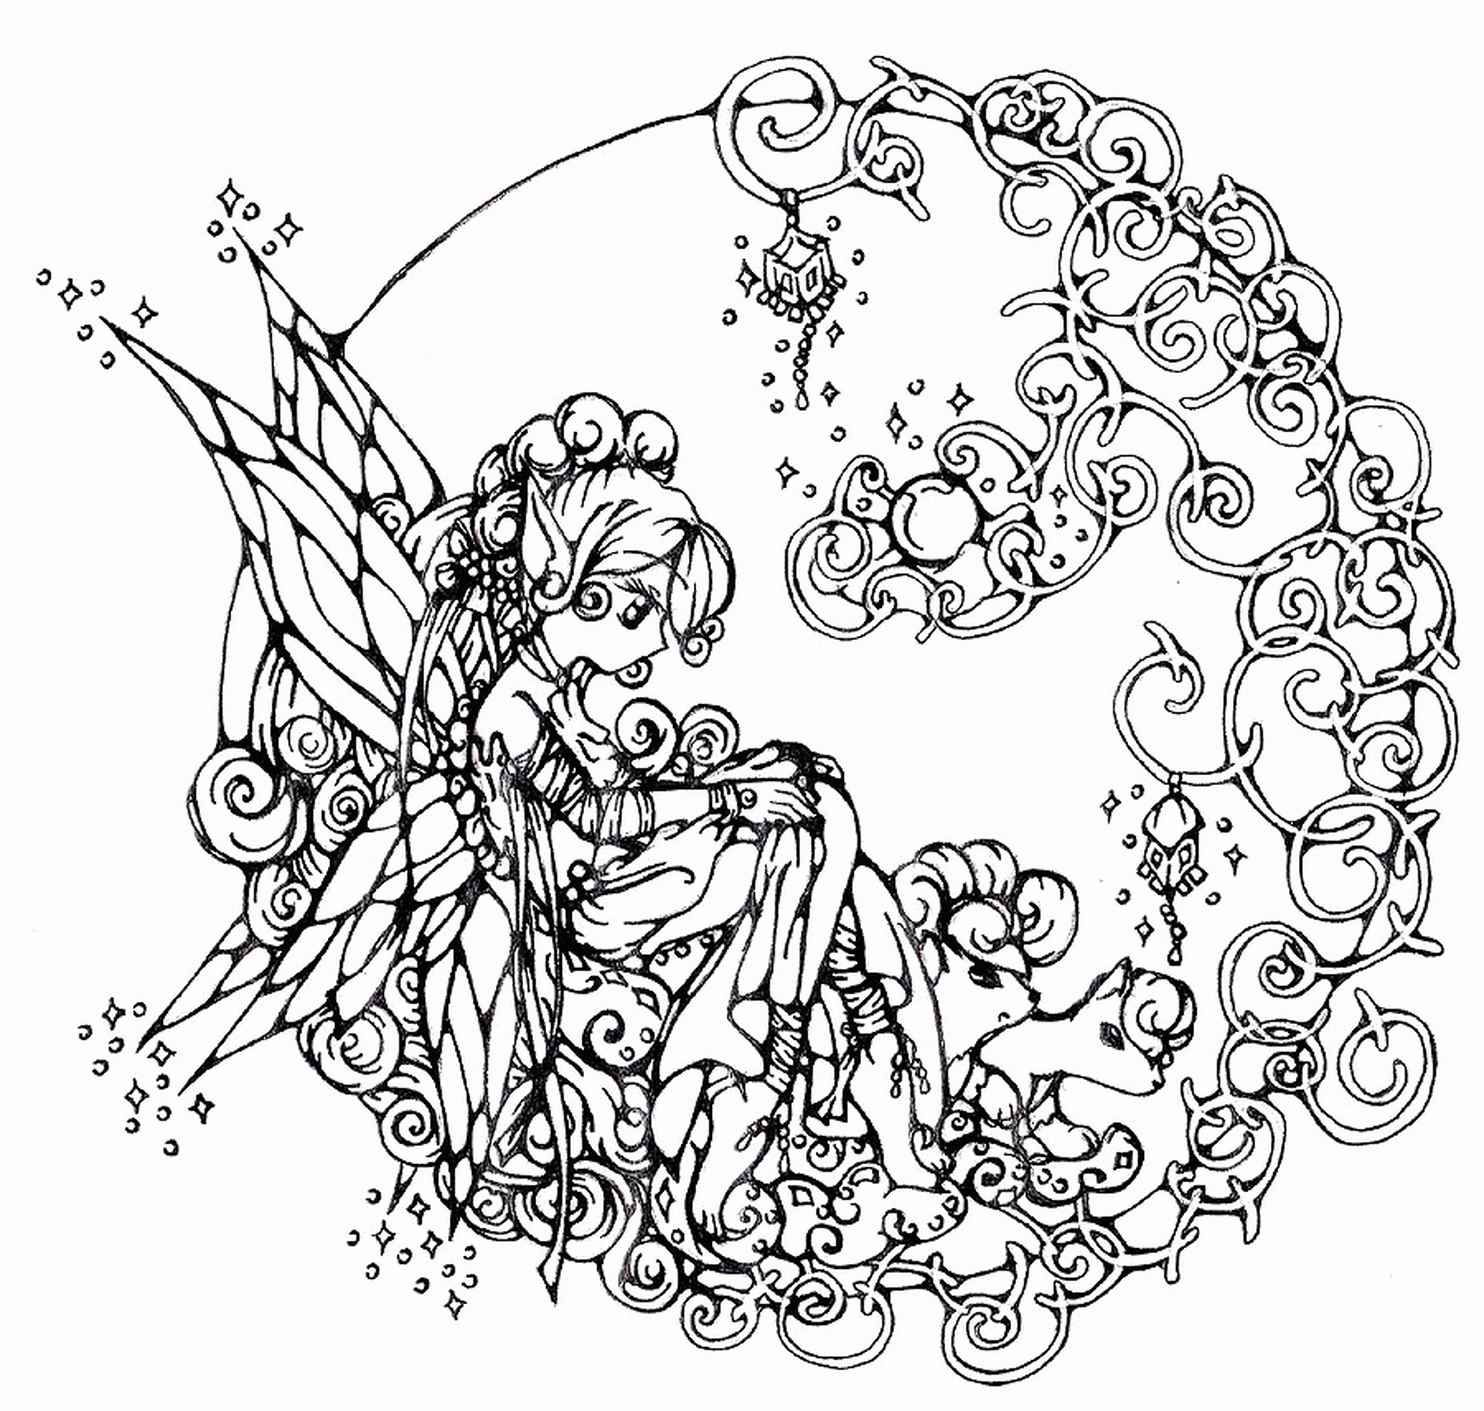 Colouring Sheets For Adults Alfa Coloring Pagesalfa Coloring Pages